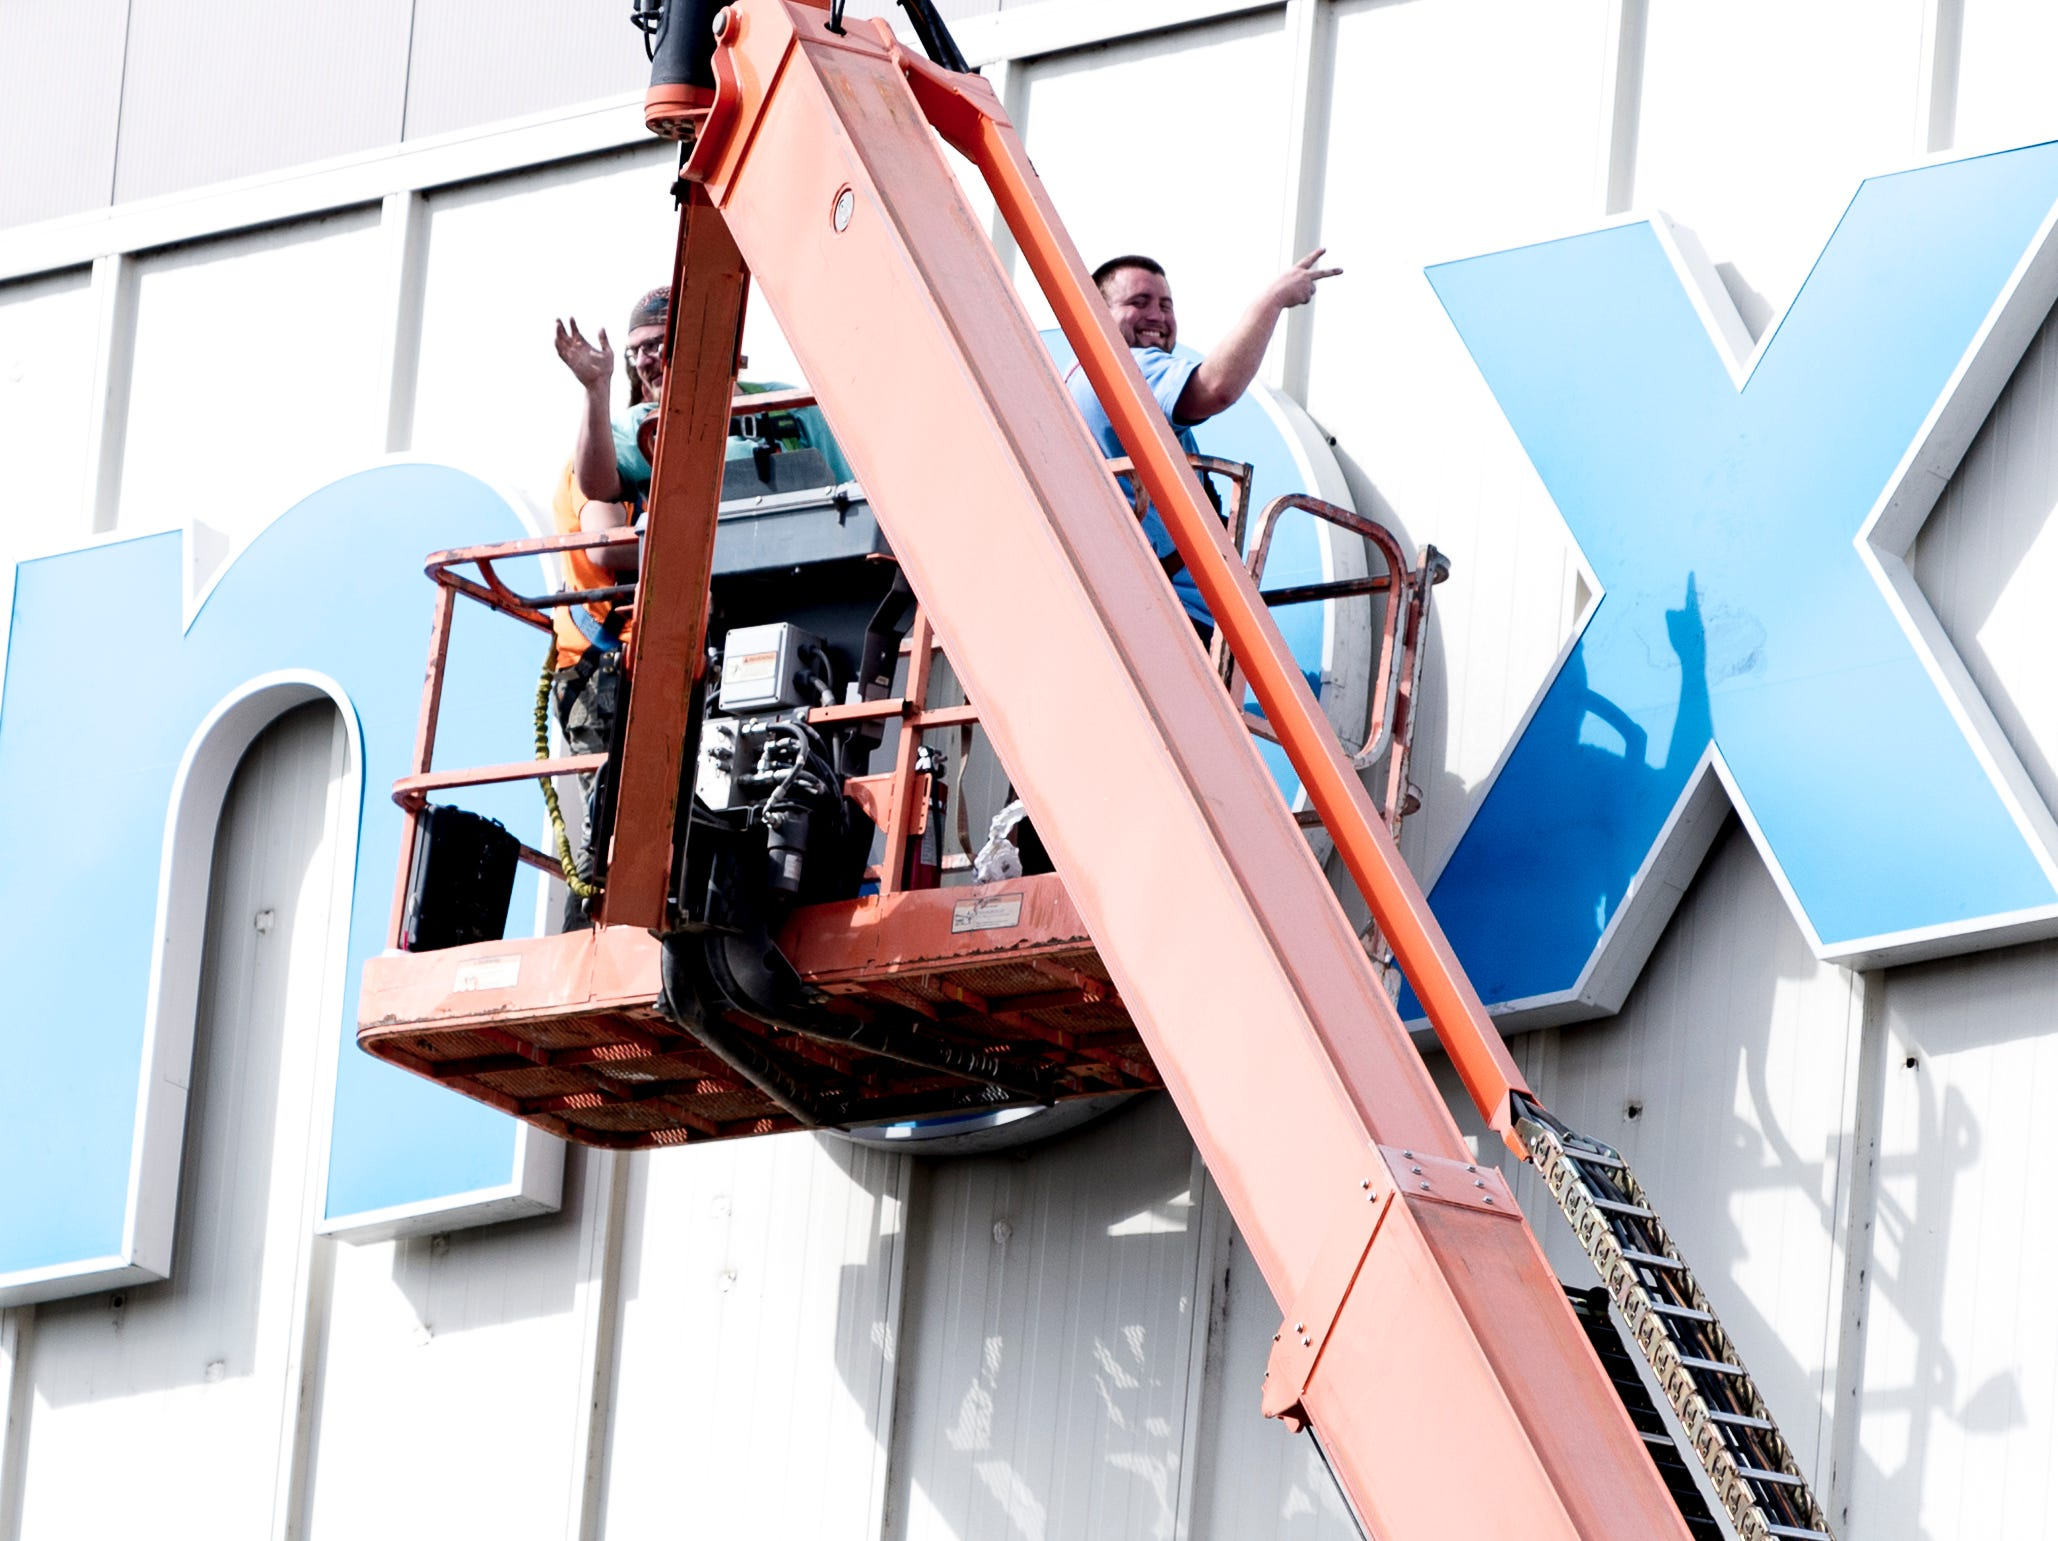 """Workers from Sycamore Sign Service pose for the camera while installing the """"knox news."""" sign on the front of the Knoxville News Sentinel building on 2332 News Sentinel Dr. in Knoxville, Tennessee on Thursday, February 7, 2019."""